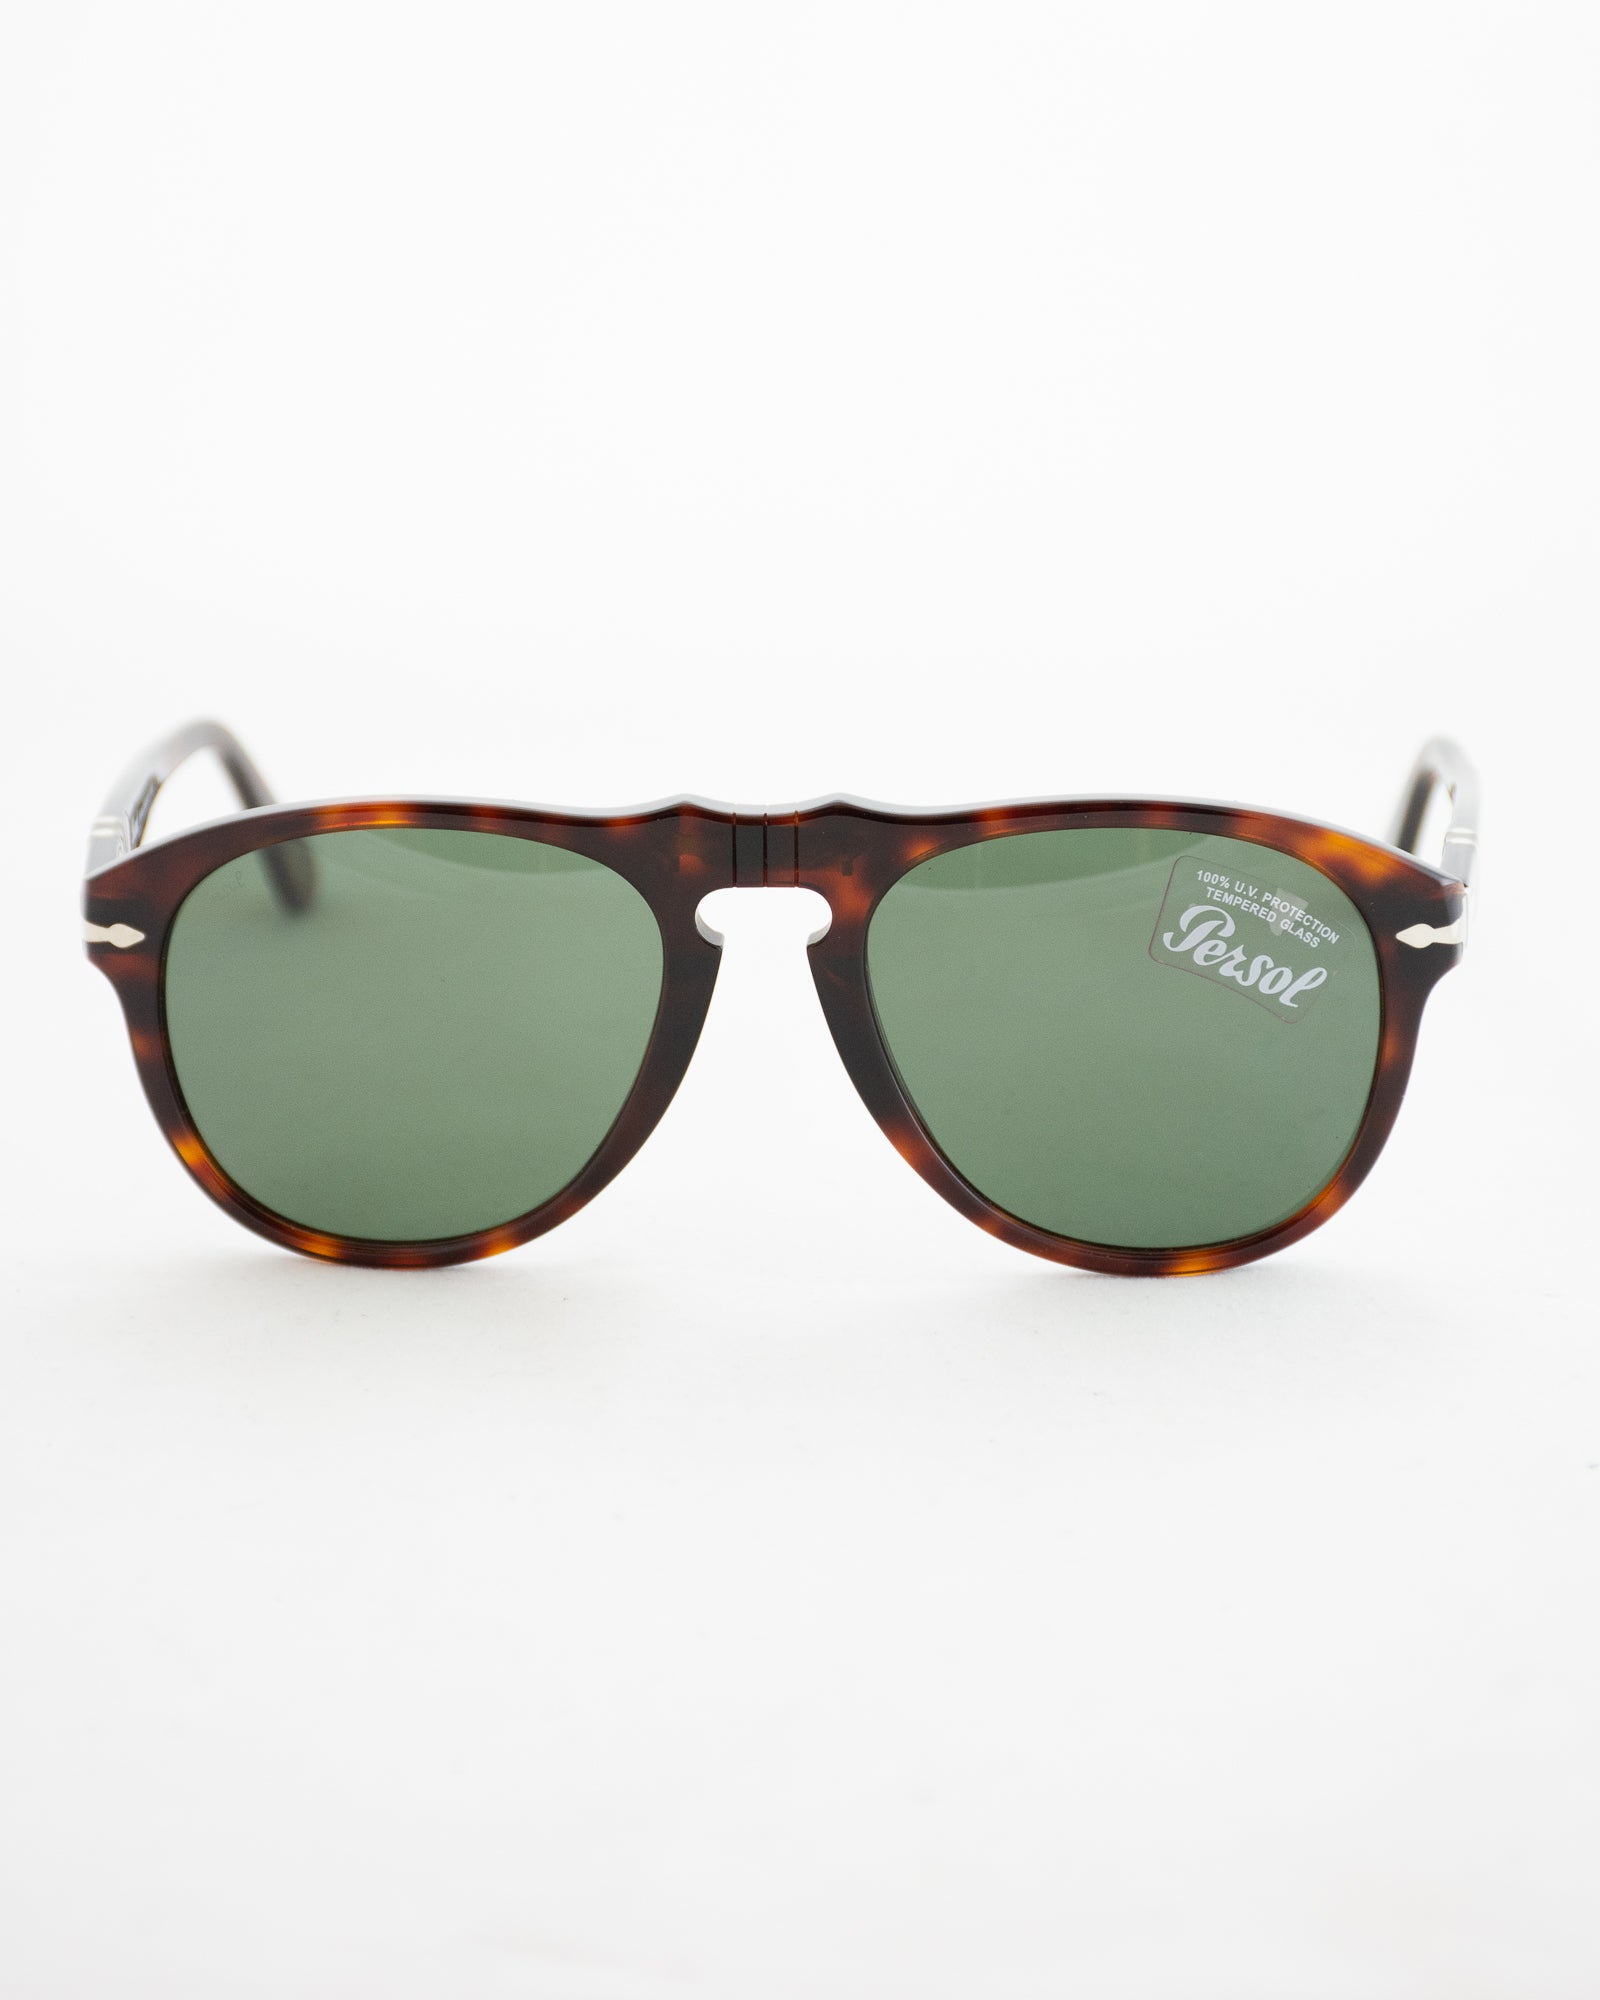 PERSOL 645 Original Sunglasses